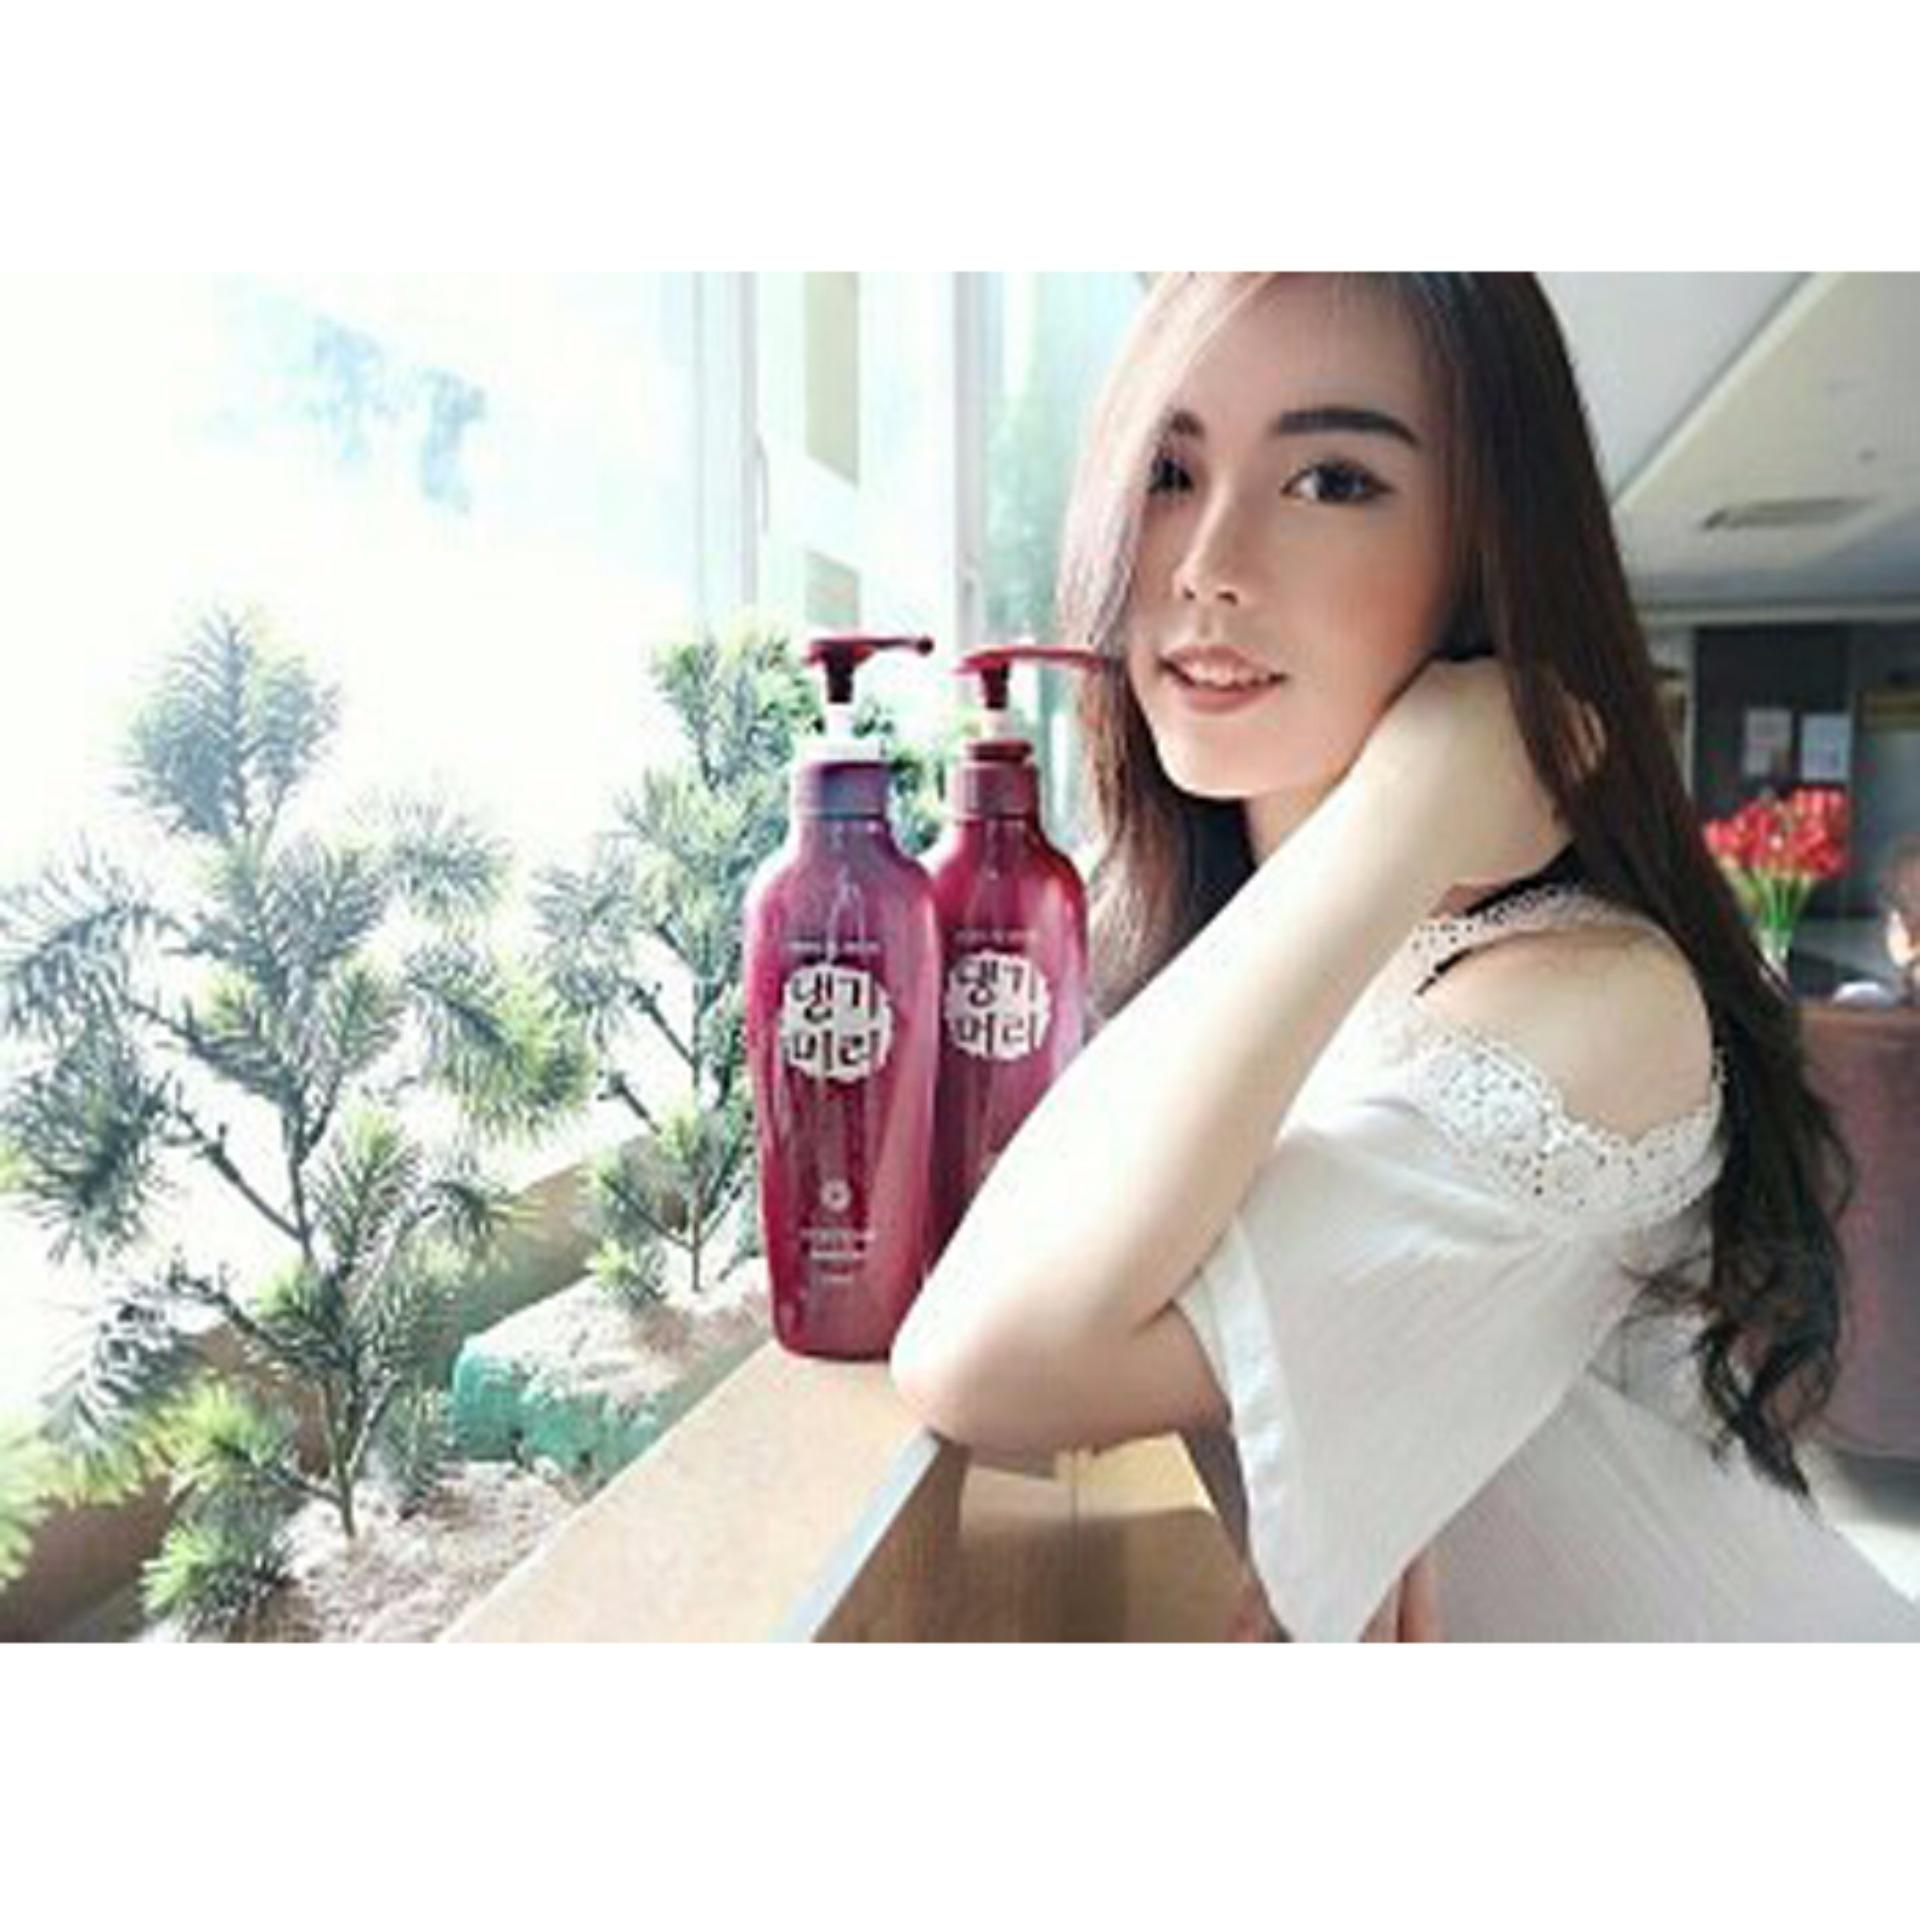 Terbaik Murah Shampoo Herbal Korea Daeng Gi Meo Ri For Damage Hair Bio Indonesia Ginseng Shampo Bpom Conditioner 300 Ml